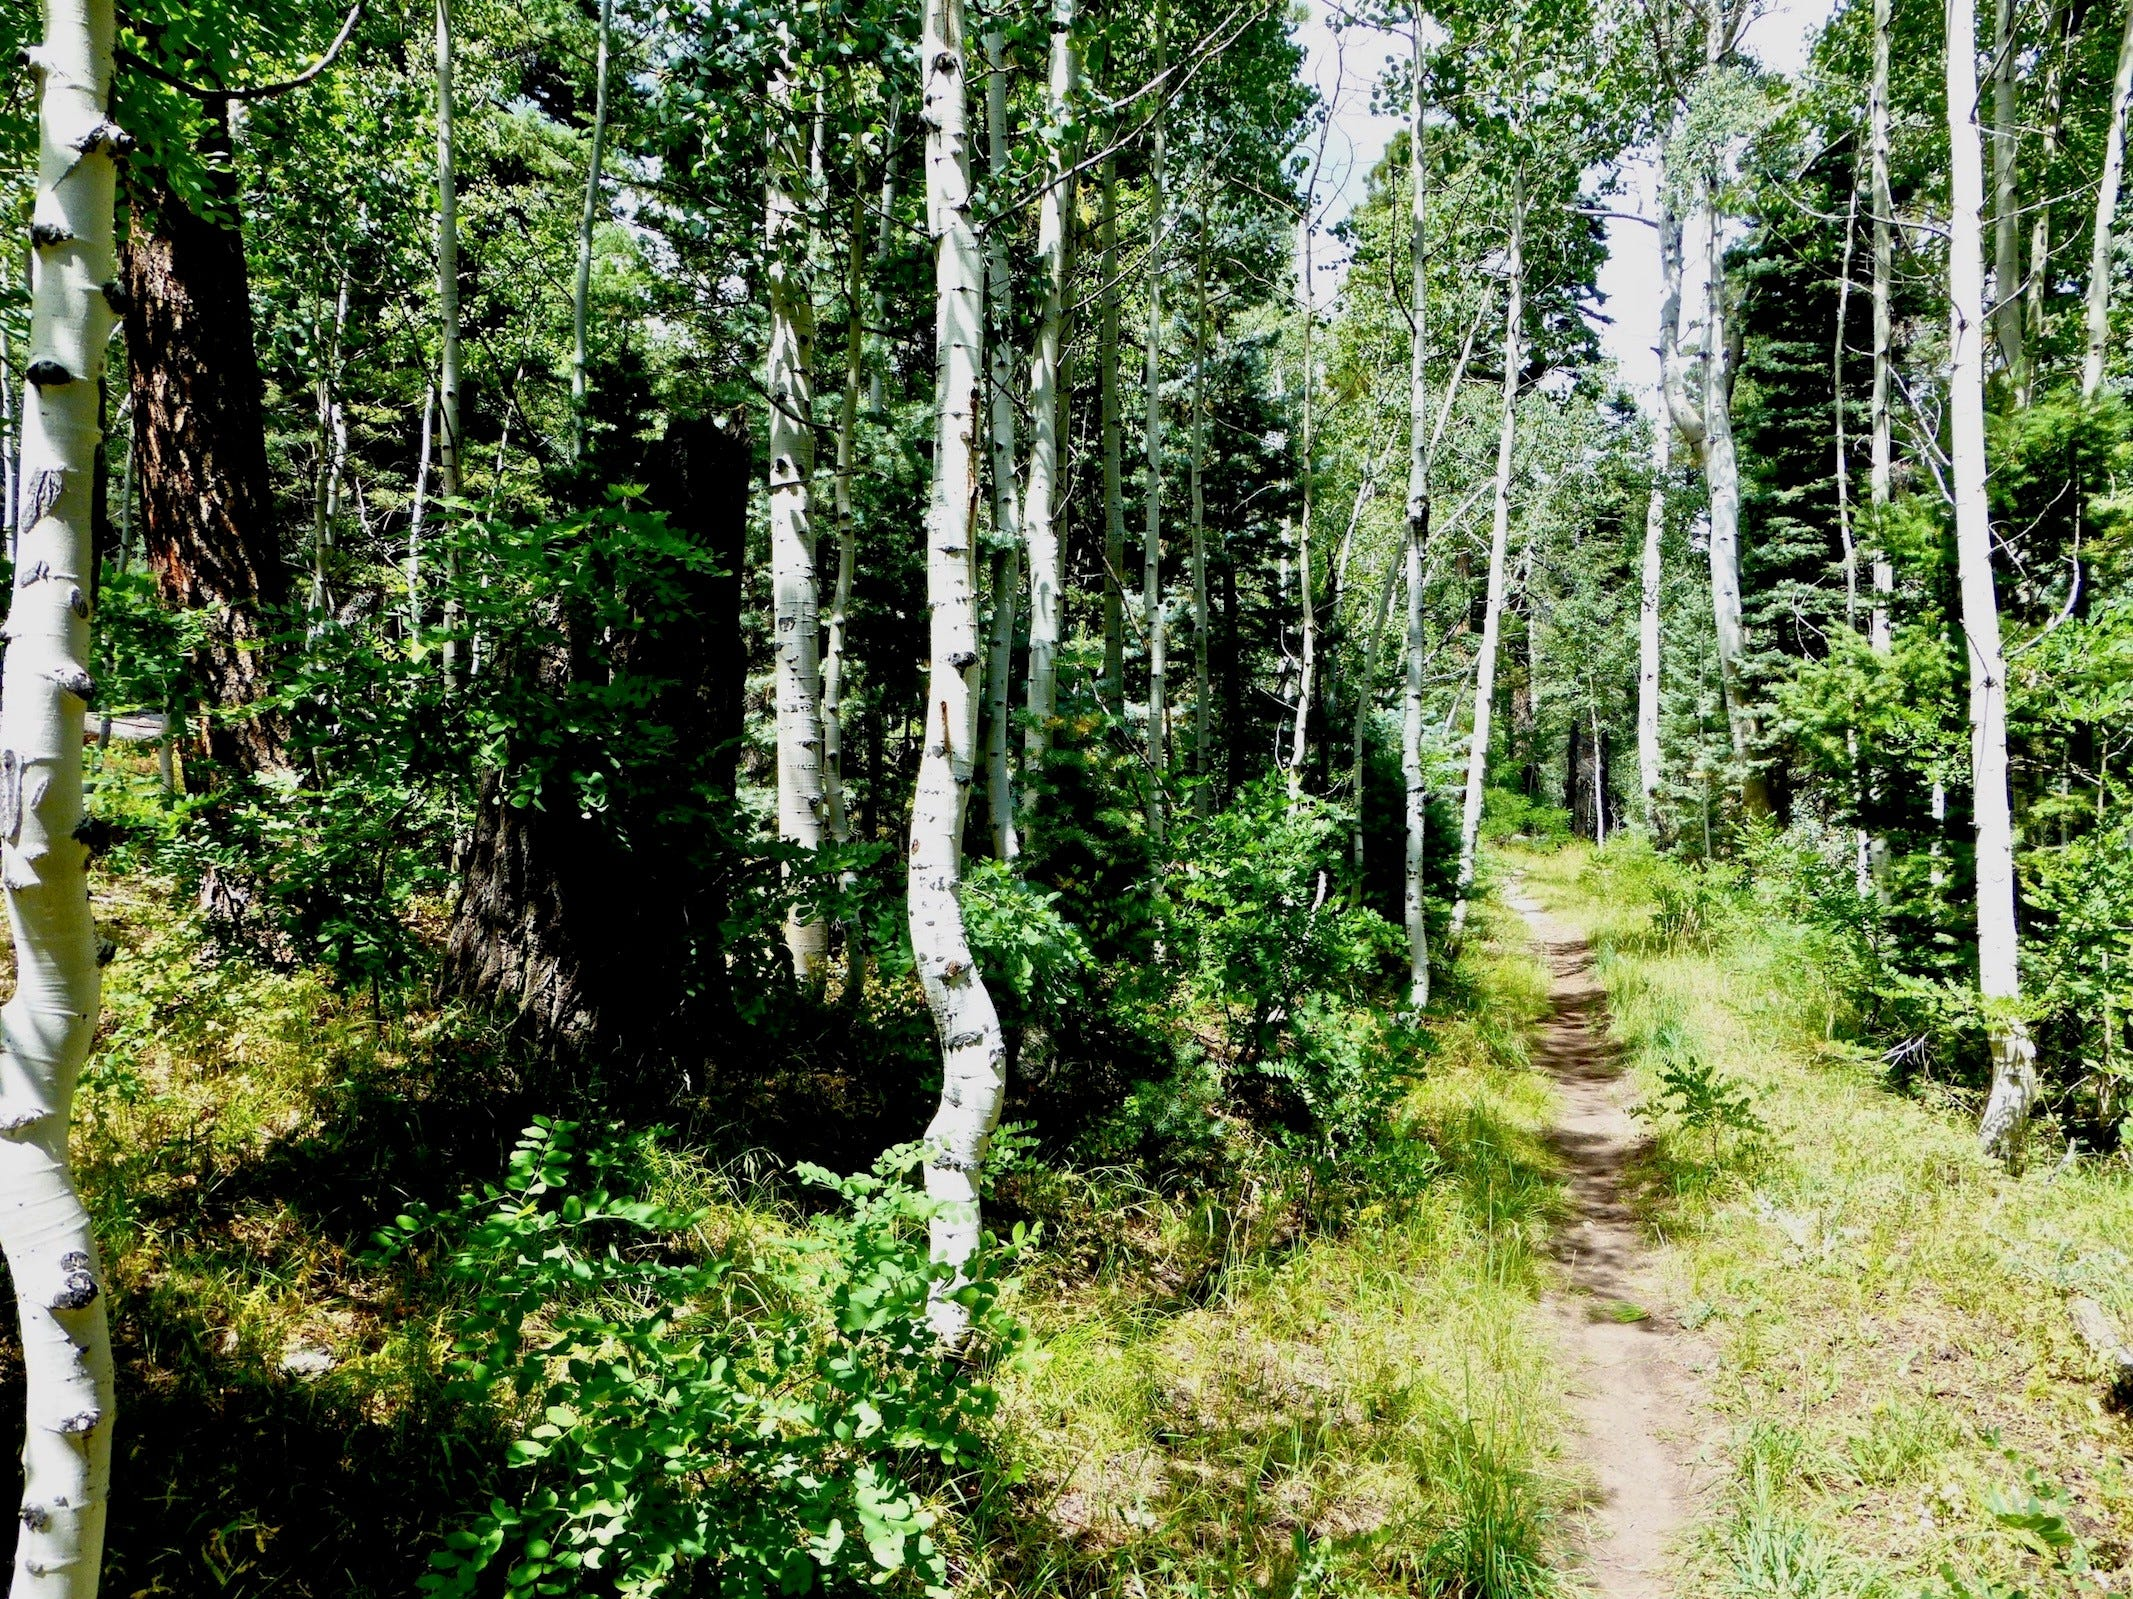 From the East Rim View in Kaibab National Forest, the Arizona Trail travels through lush woods, making for a shady summertime hike.